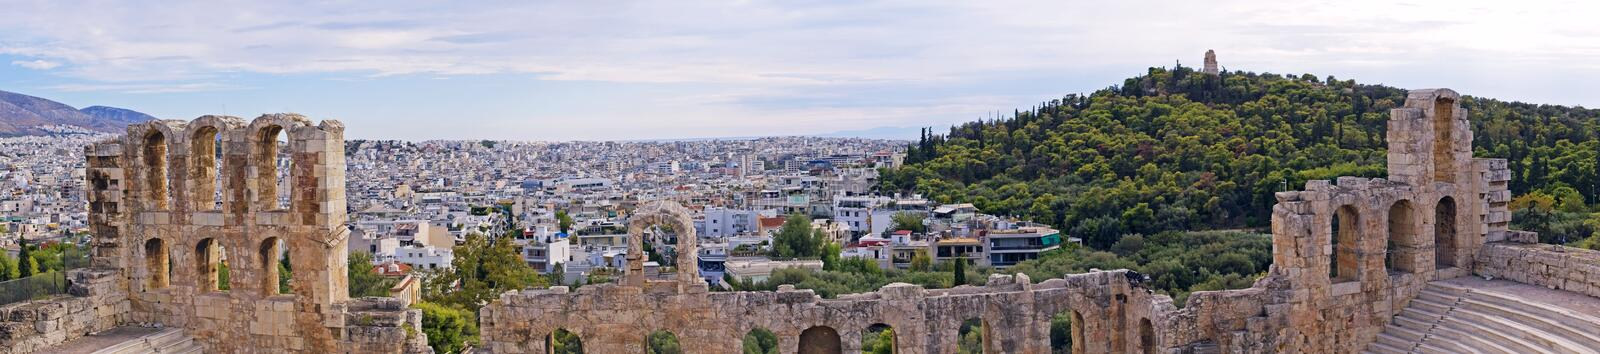 Panoramic view from the Acropolis to the other side of the capital Athens on a hot evening, Greece stock photos